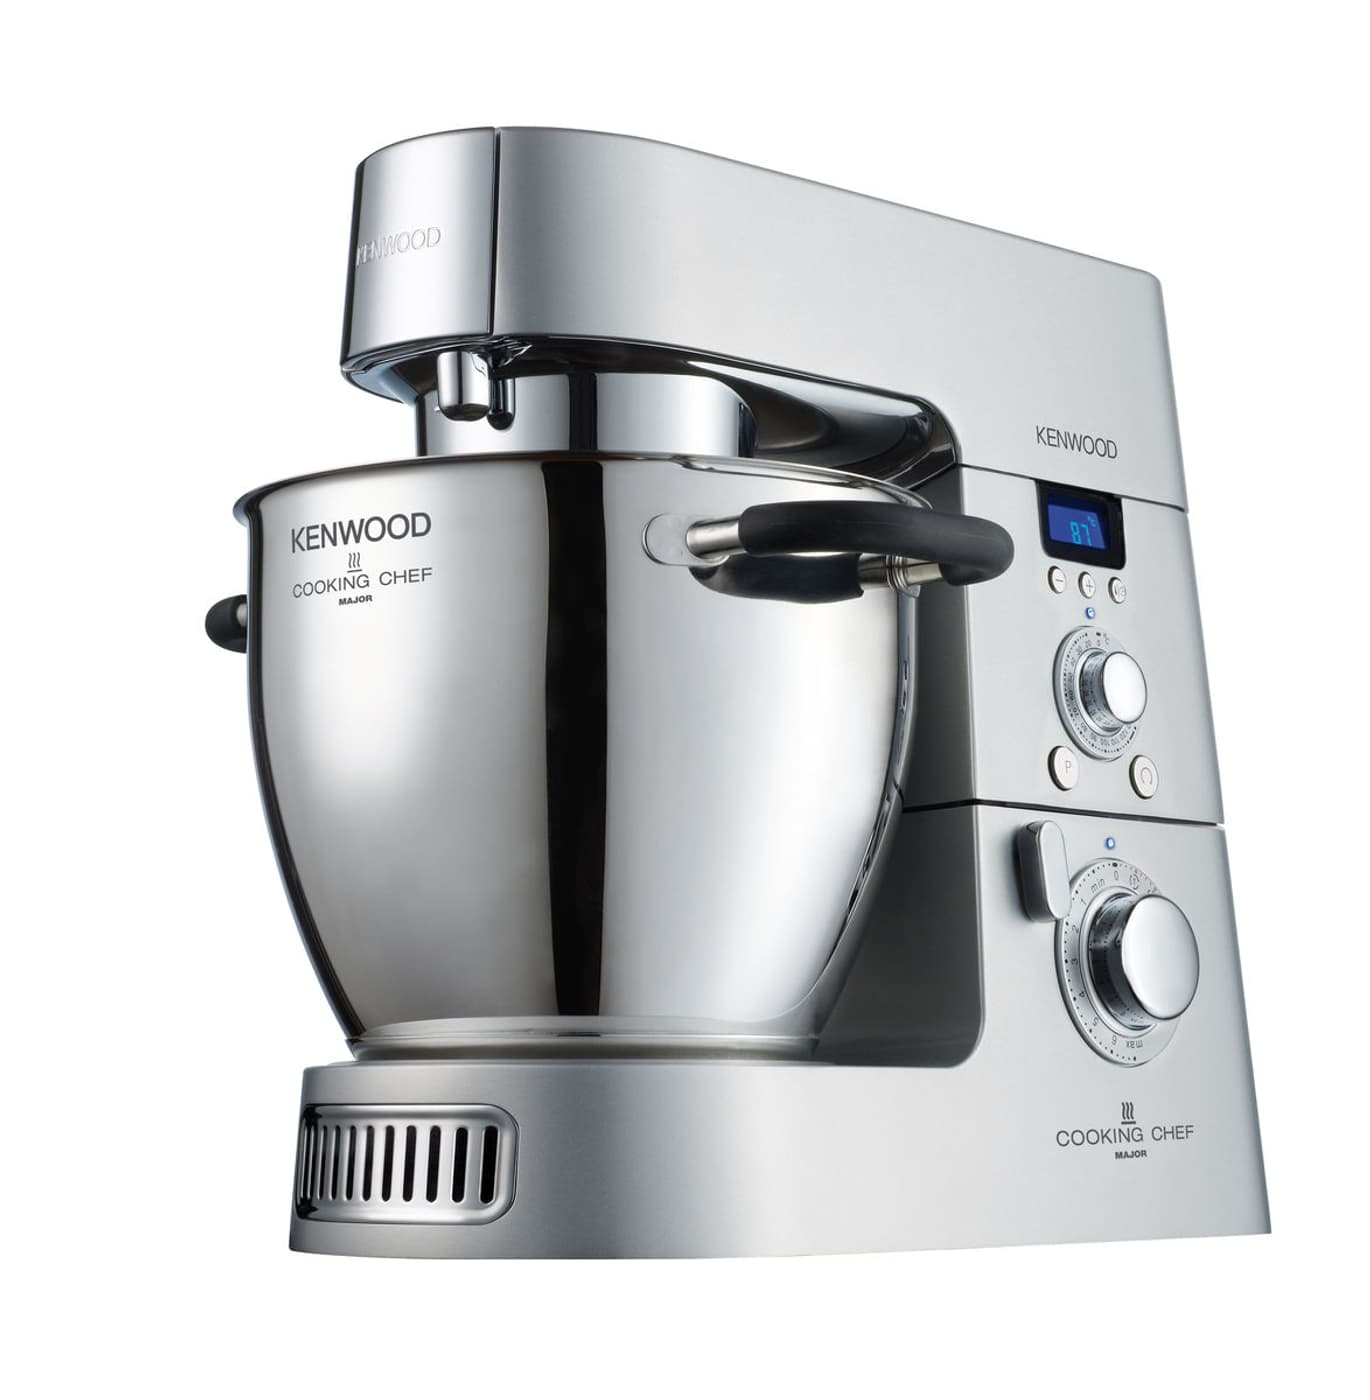 Kenwood Km094 Cooking Chef Kuchenmaschine Migros